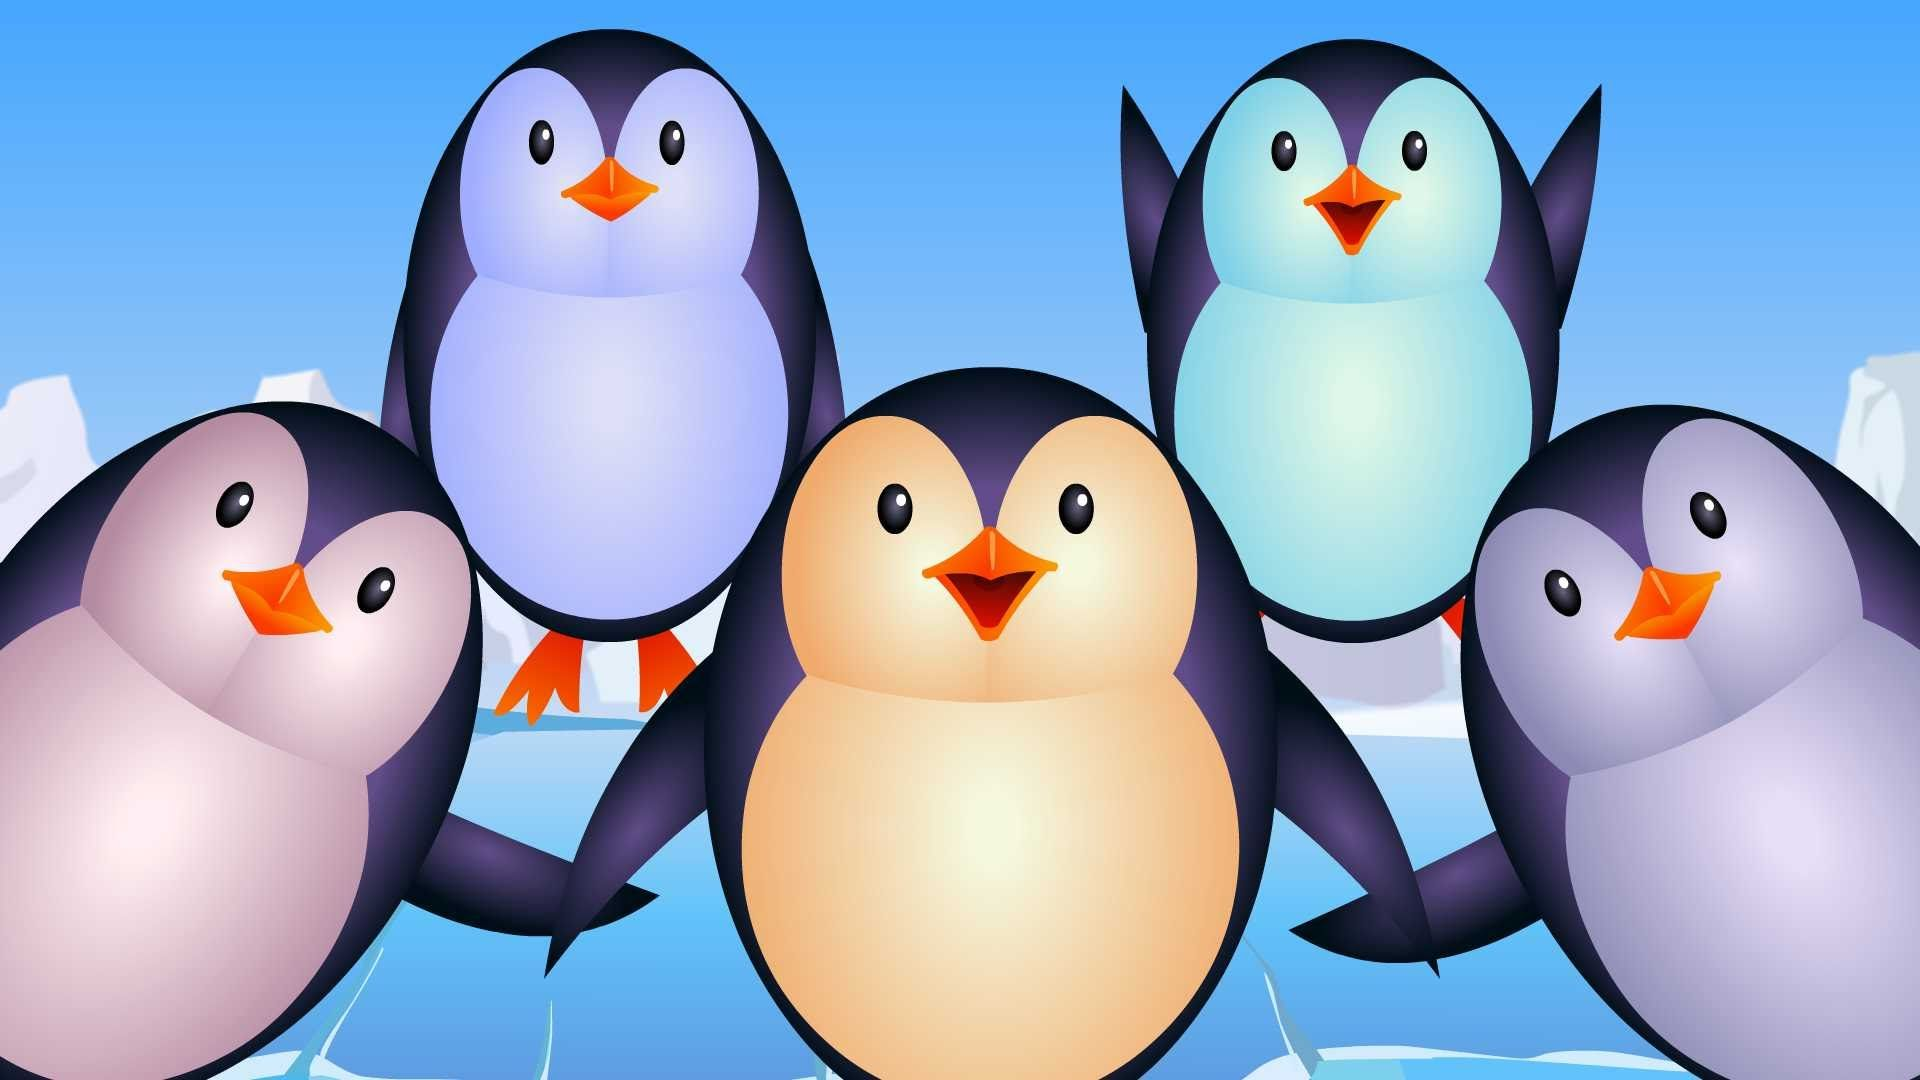 "Lyrics of the rhyme: ""Five little Penguins jumping in the Snow, One fell off and bumped his toe, Baby called the doctor and the doctor said No more Penguins ..."